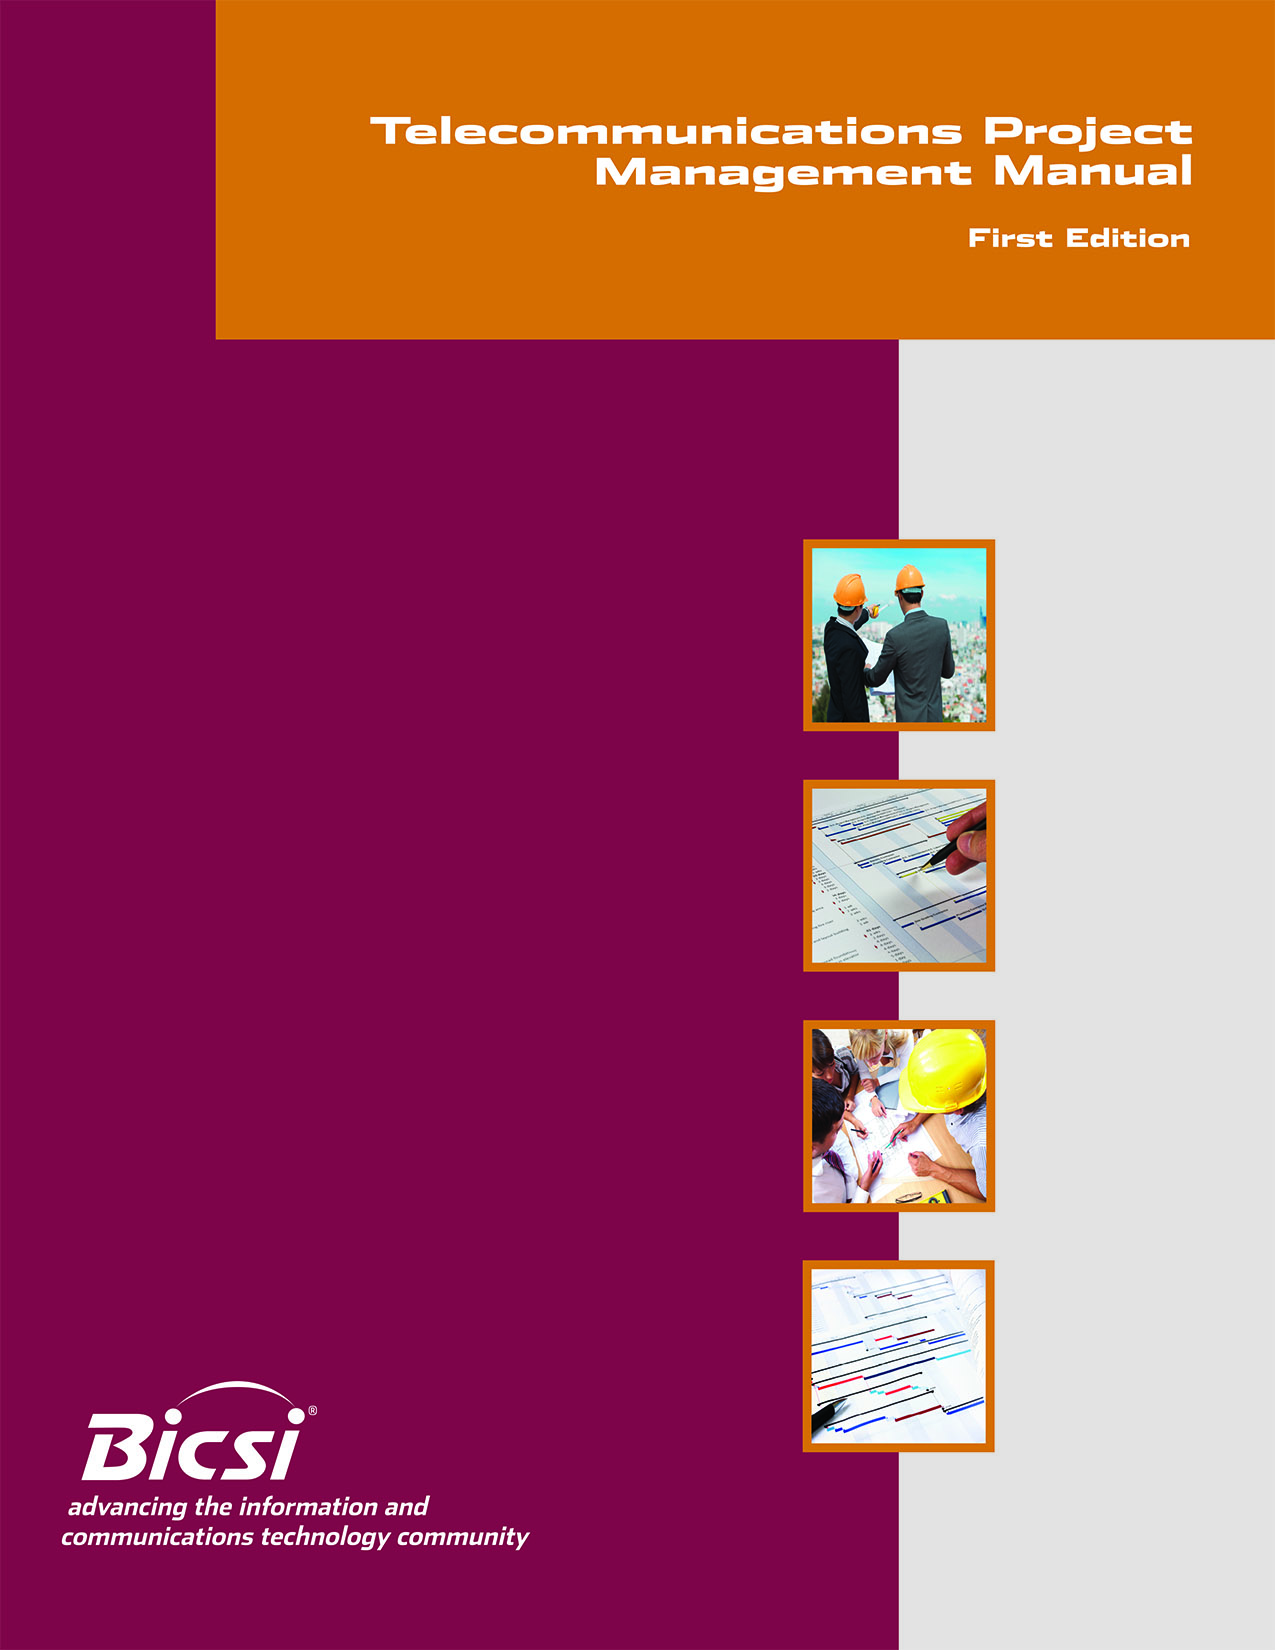 Telecommunications Project Management Manual (TPMM)